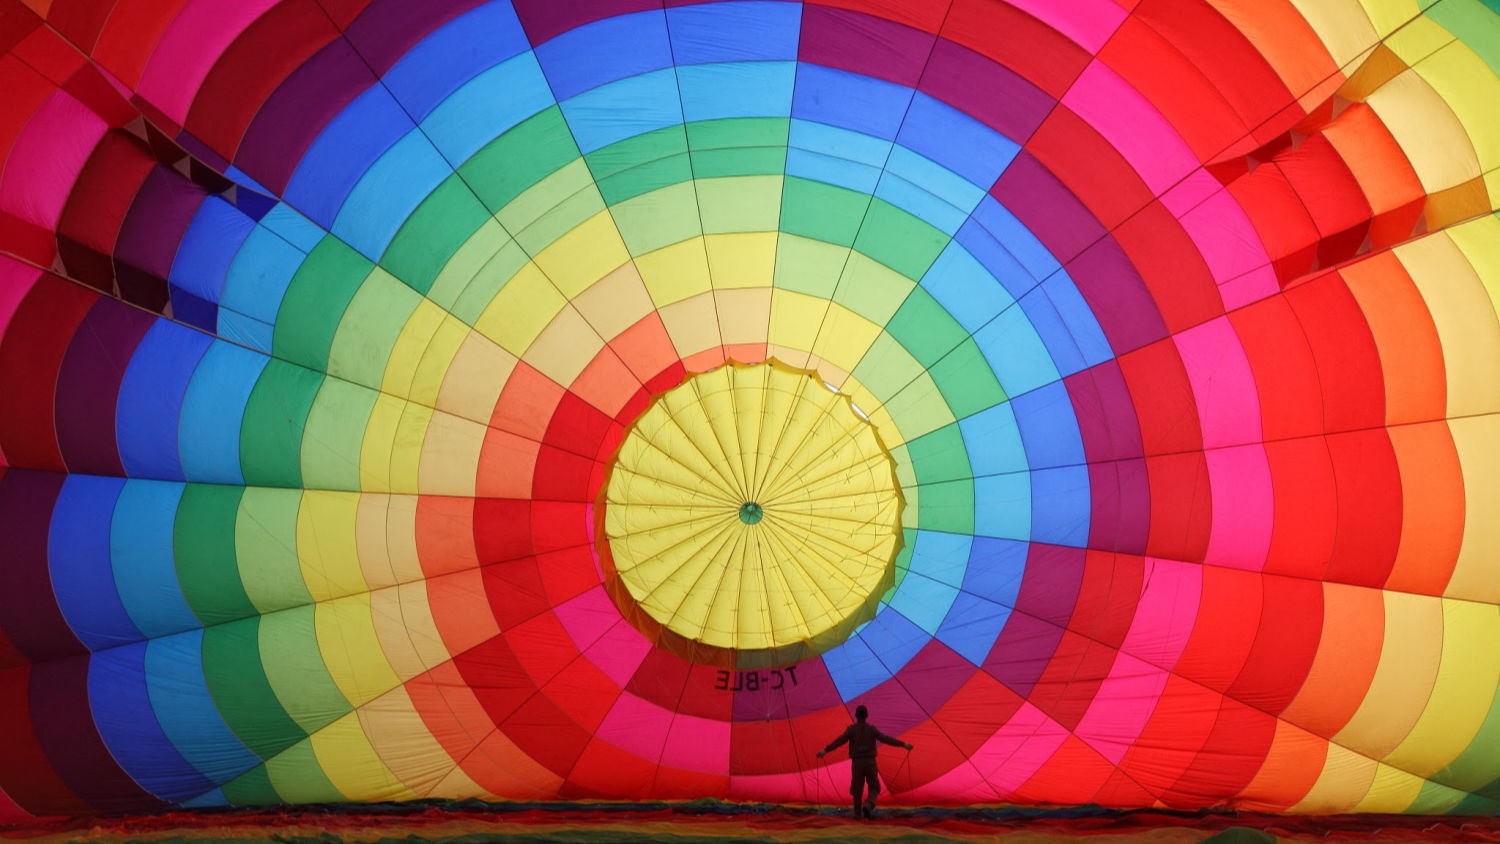 Photograph of multicolored balloon inflating, with silhouette of person